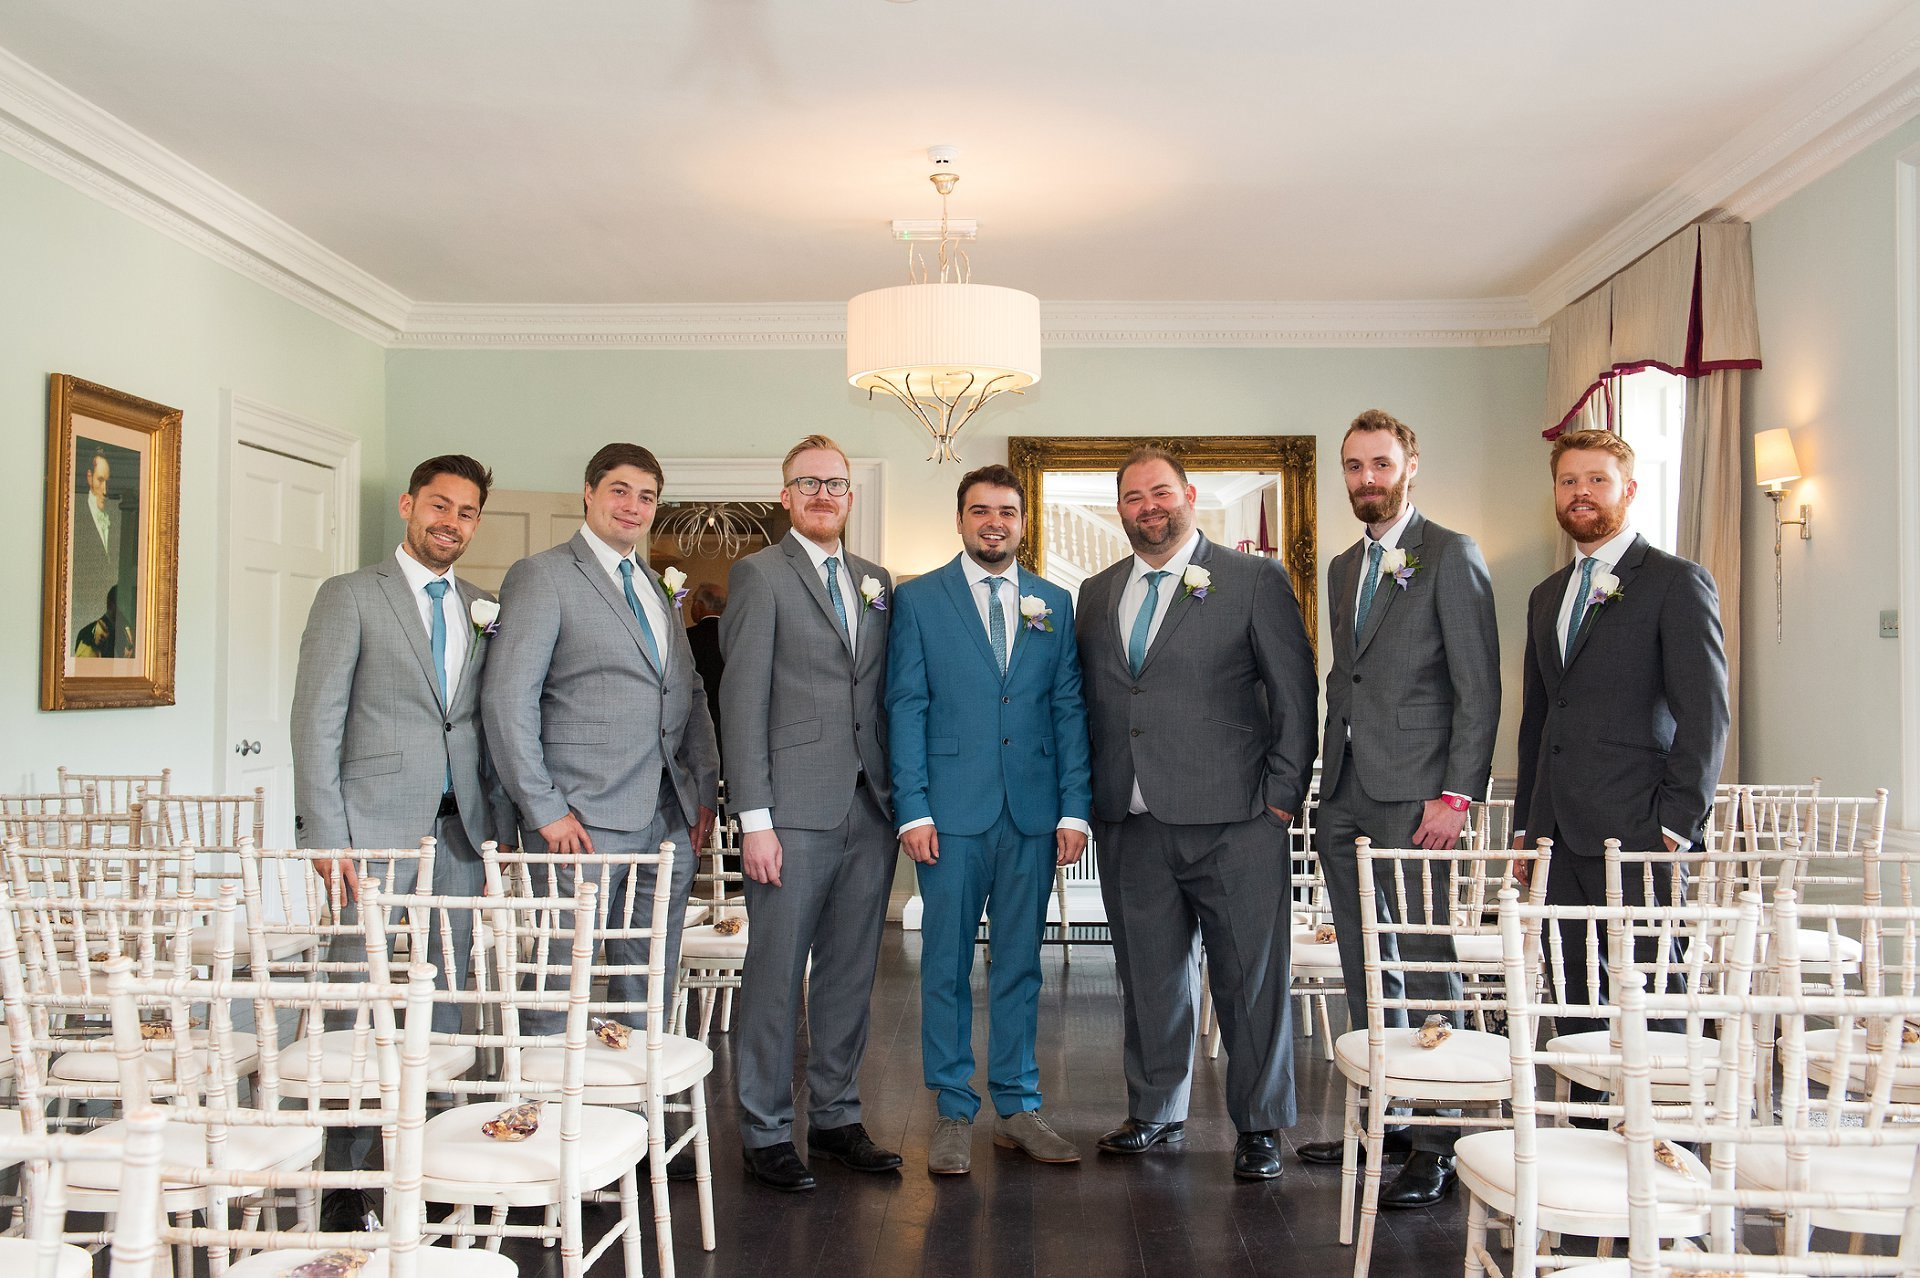 Groom, best man and ushers in the Willow Room at Morden Hall